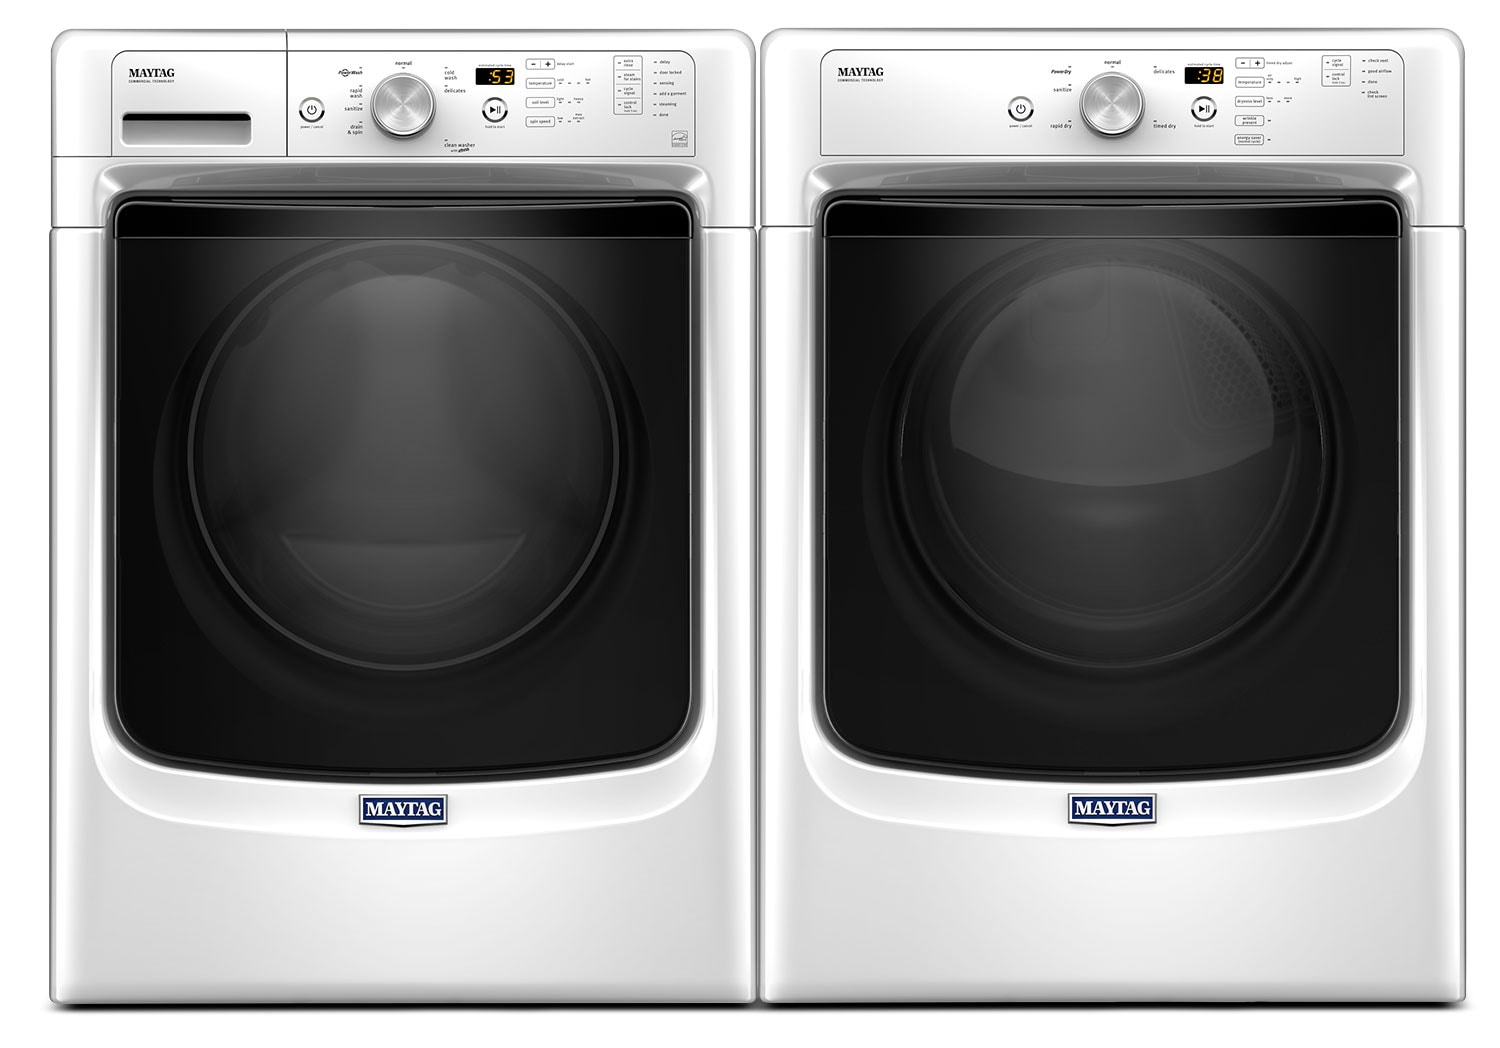 Washers and Dryers - Maytag 5.2 Cu. Ft. Front-Load Washer and 7.4 Cu. Ft. Electric Dryer – White